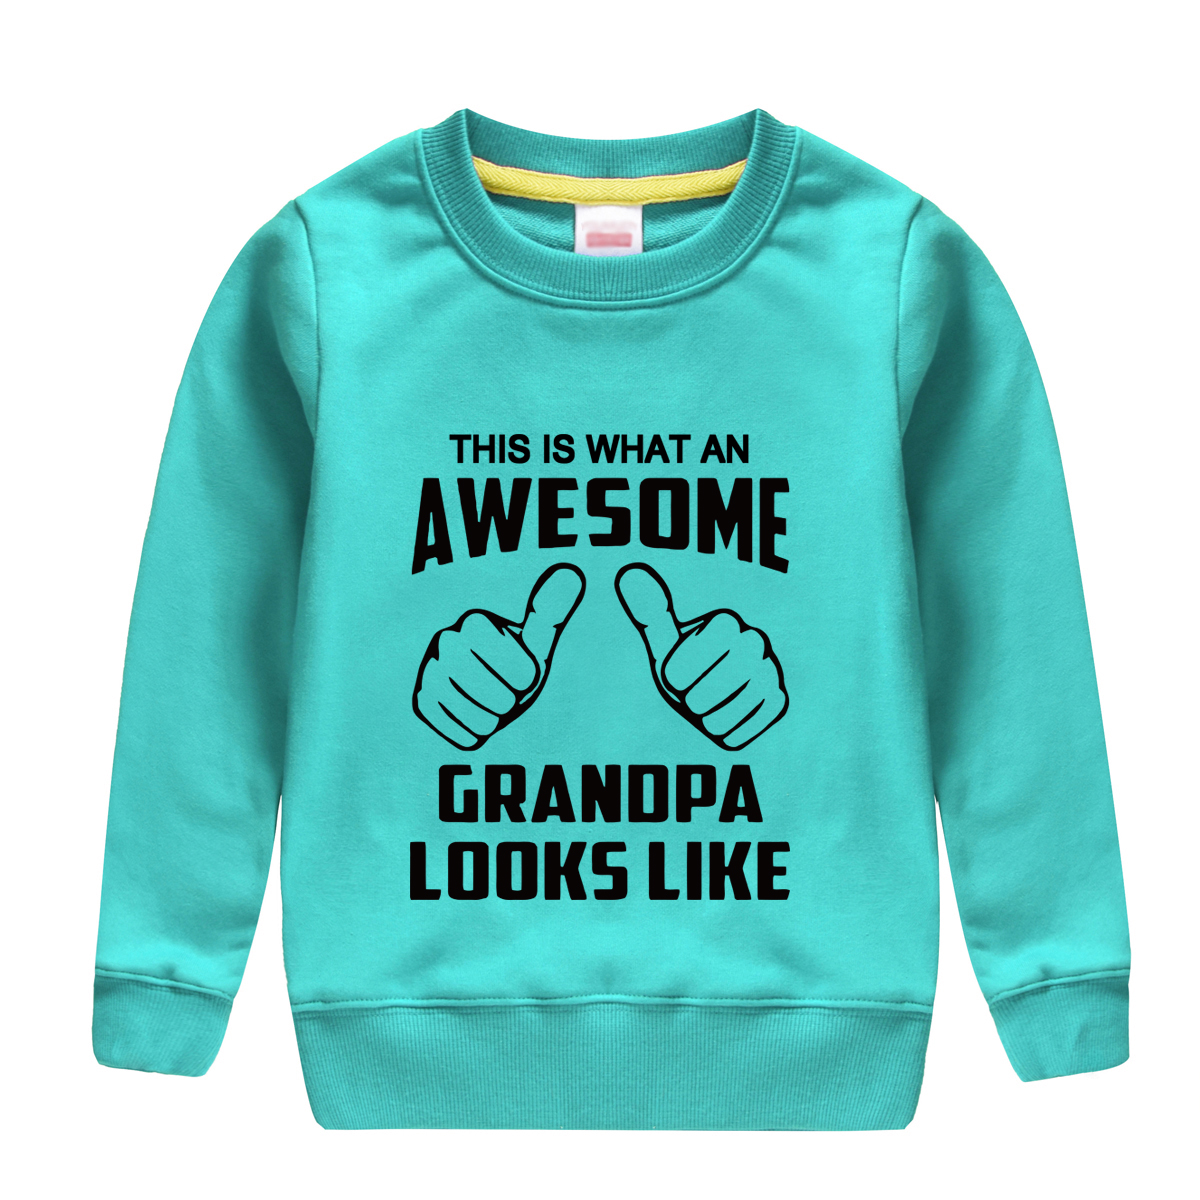 "HTB1kADbdzgy uJjSZR0q6yK5pXap - ""this is what an awesome granopa  looks like "" printing 2018 new fashion cotton sweatshirt baby boy clothing top tees for kids"